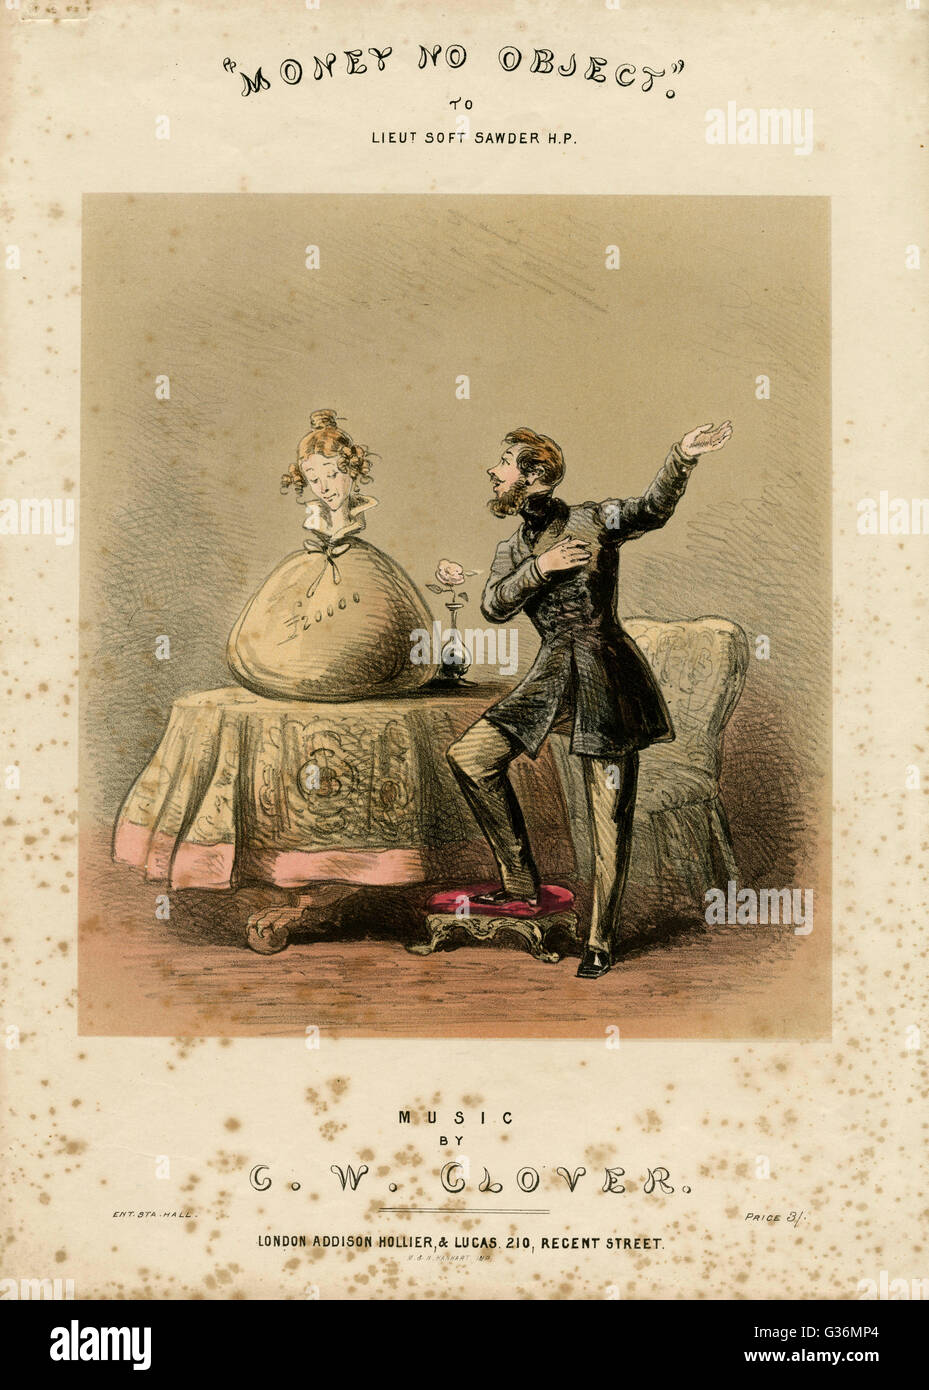 Money no object. Satire on marrying for money     Date: circa 1850s - Stock Image